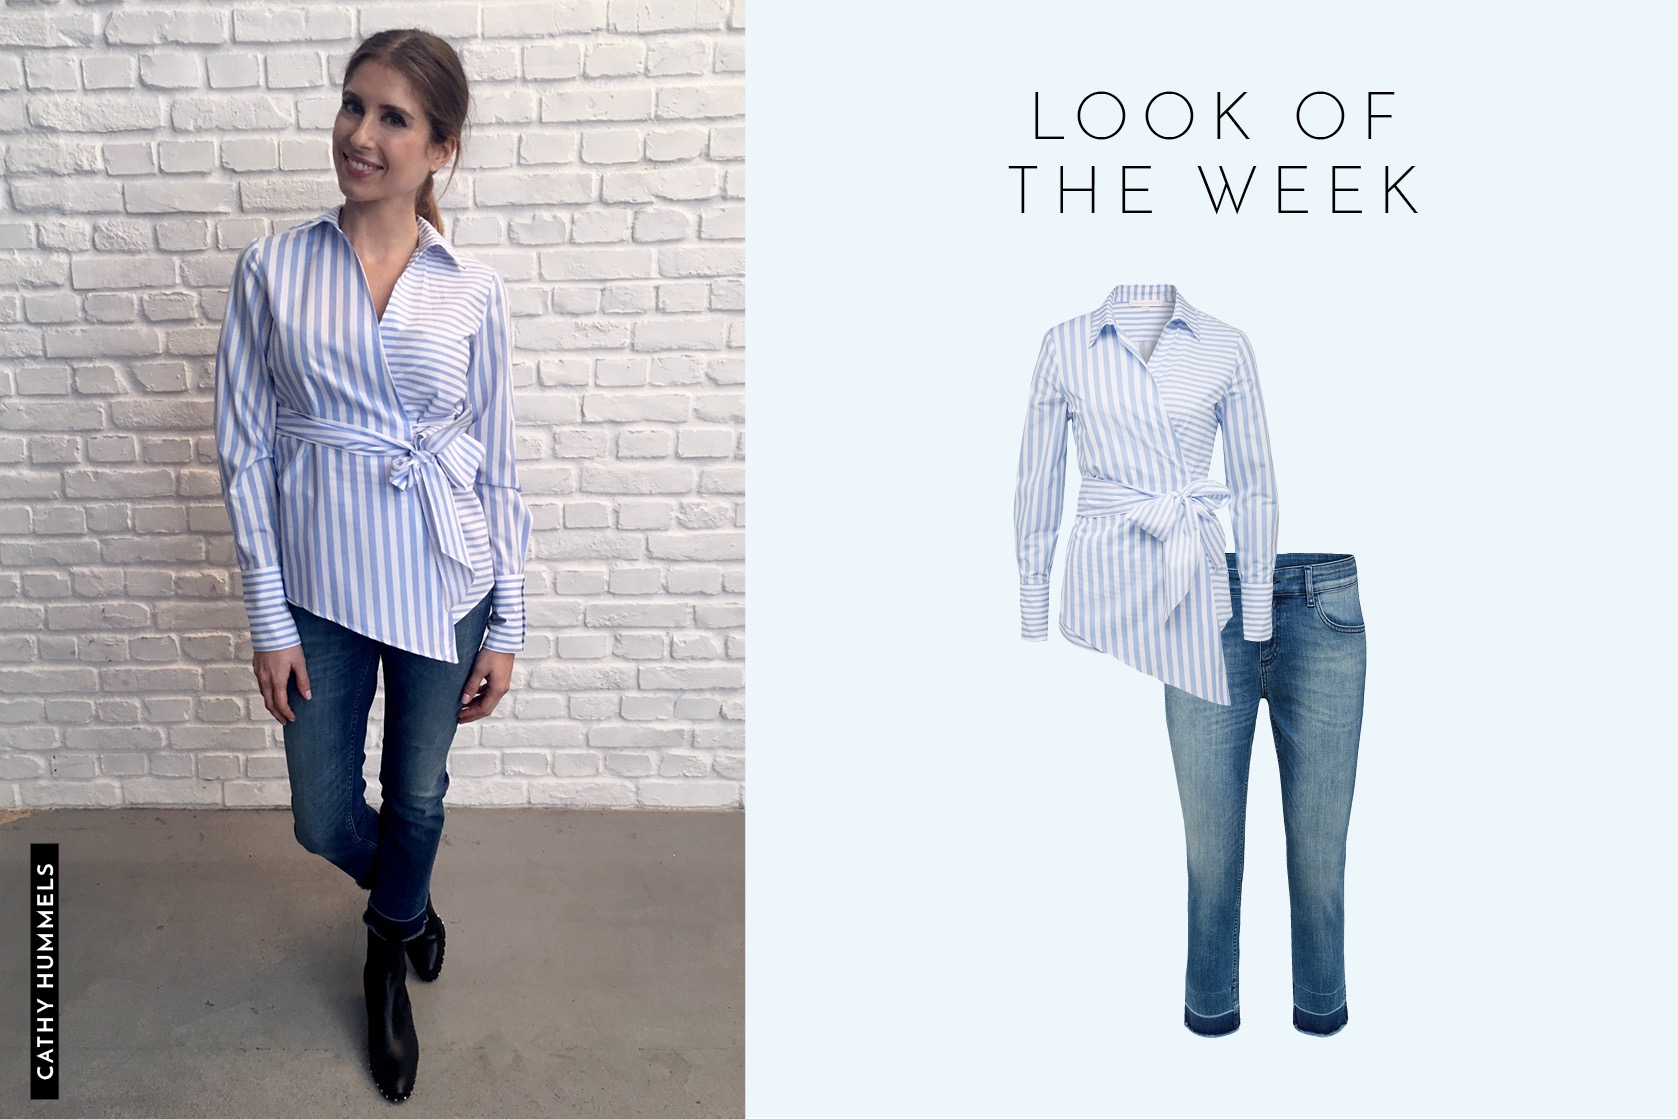 All Eyes on Stripes - Outfit of the Week